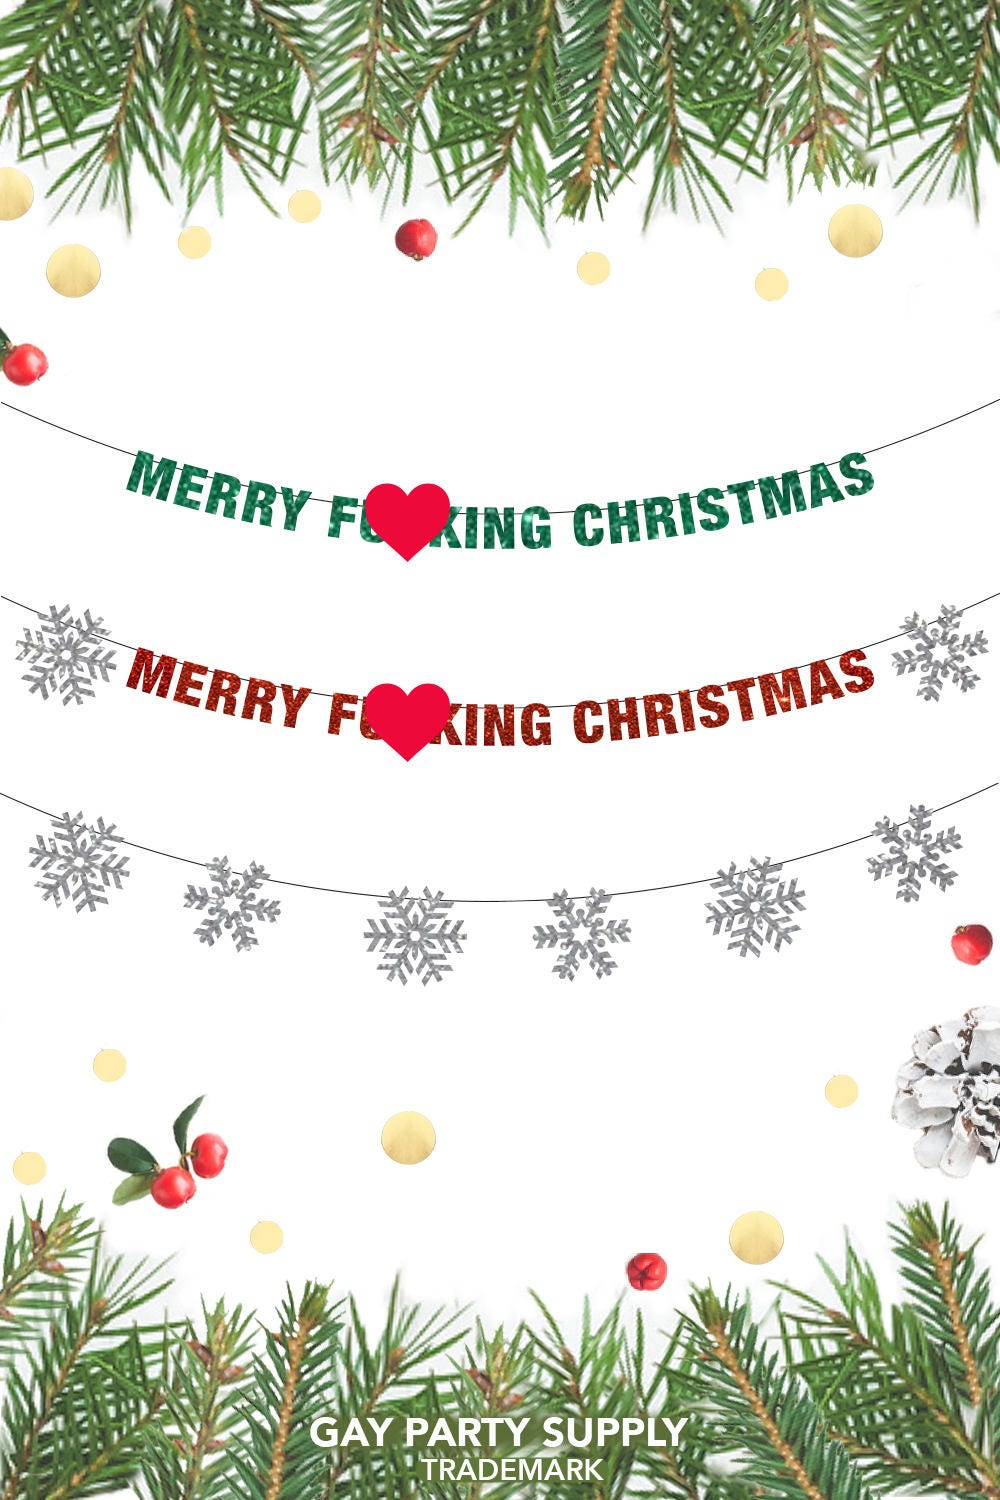 Merry F**king Christmas Banner, Christmas Banner, Christmas Decor ...